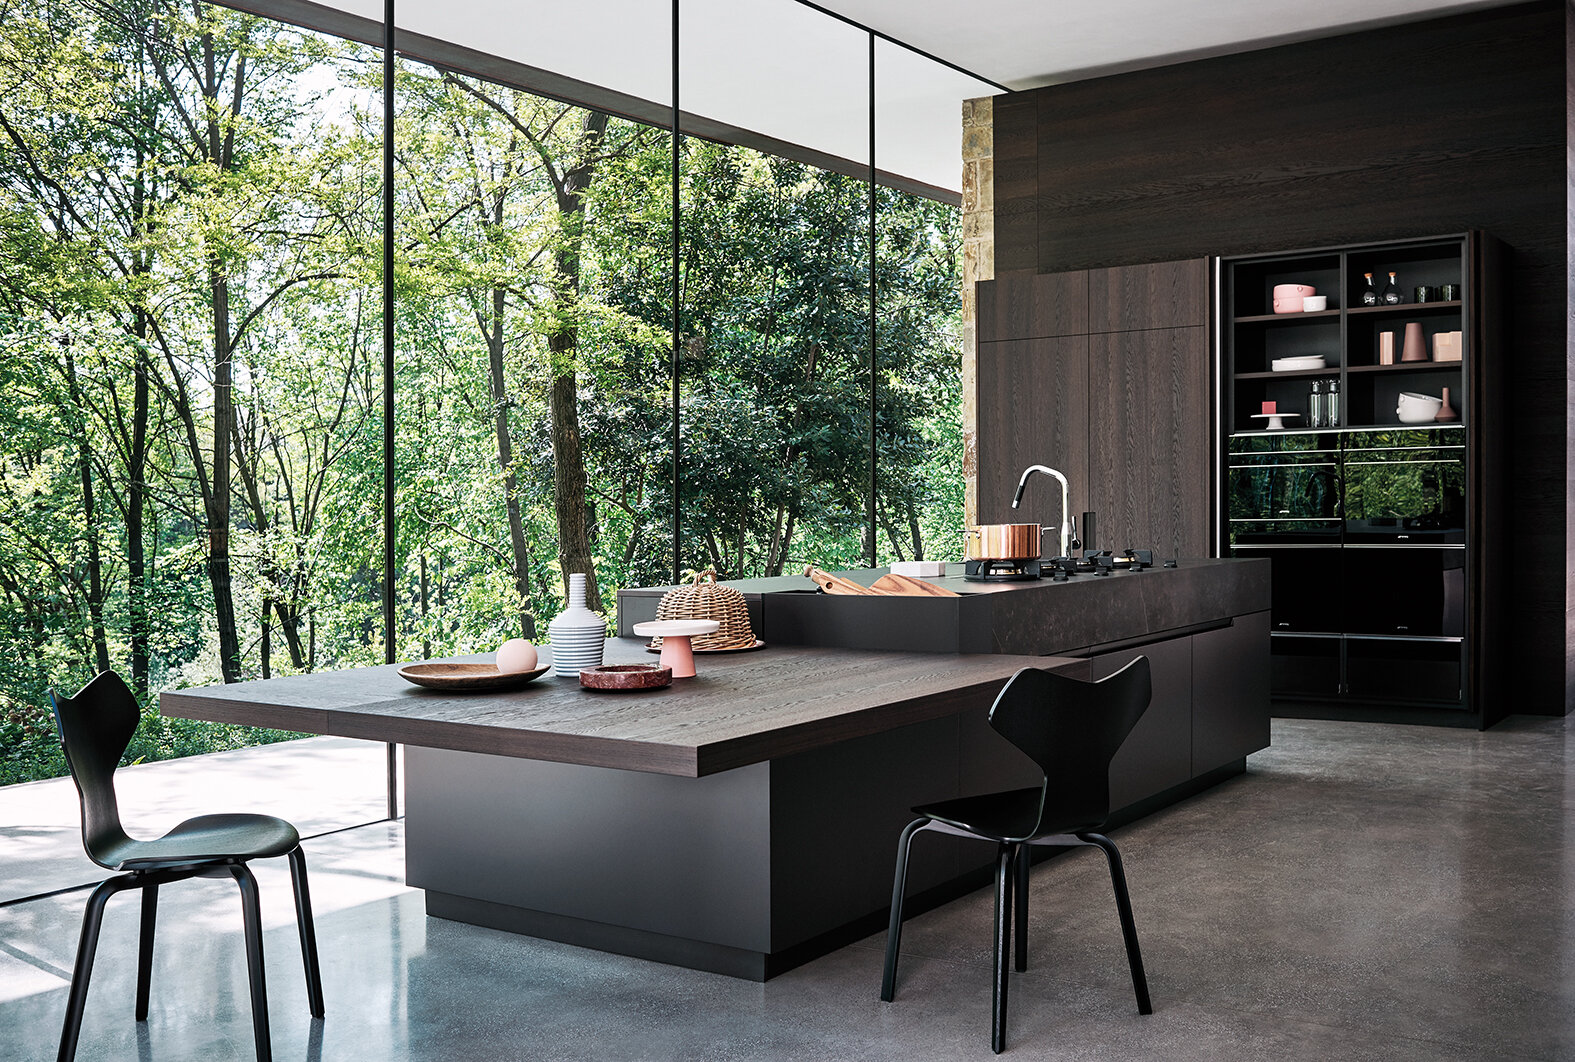 Kitchen Bath Home Design And Remodel Center Elite Kitchen Bath Express Contracting Serving Long Island Nyc Images Of Contemporary And Modern Kitchens